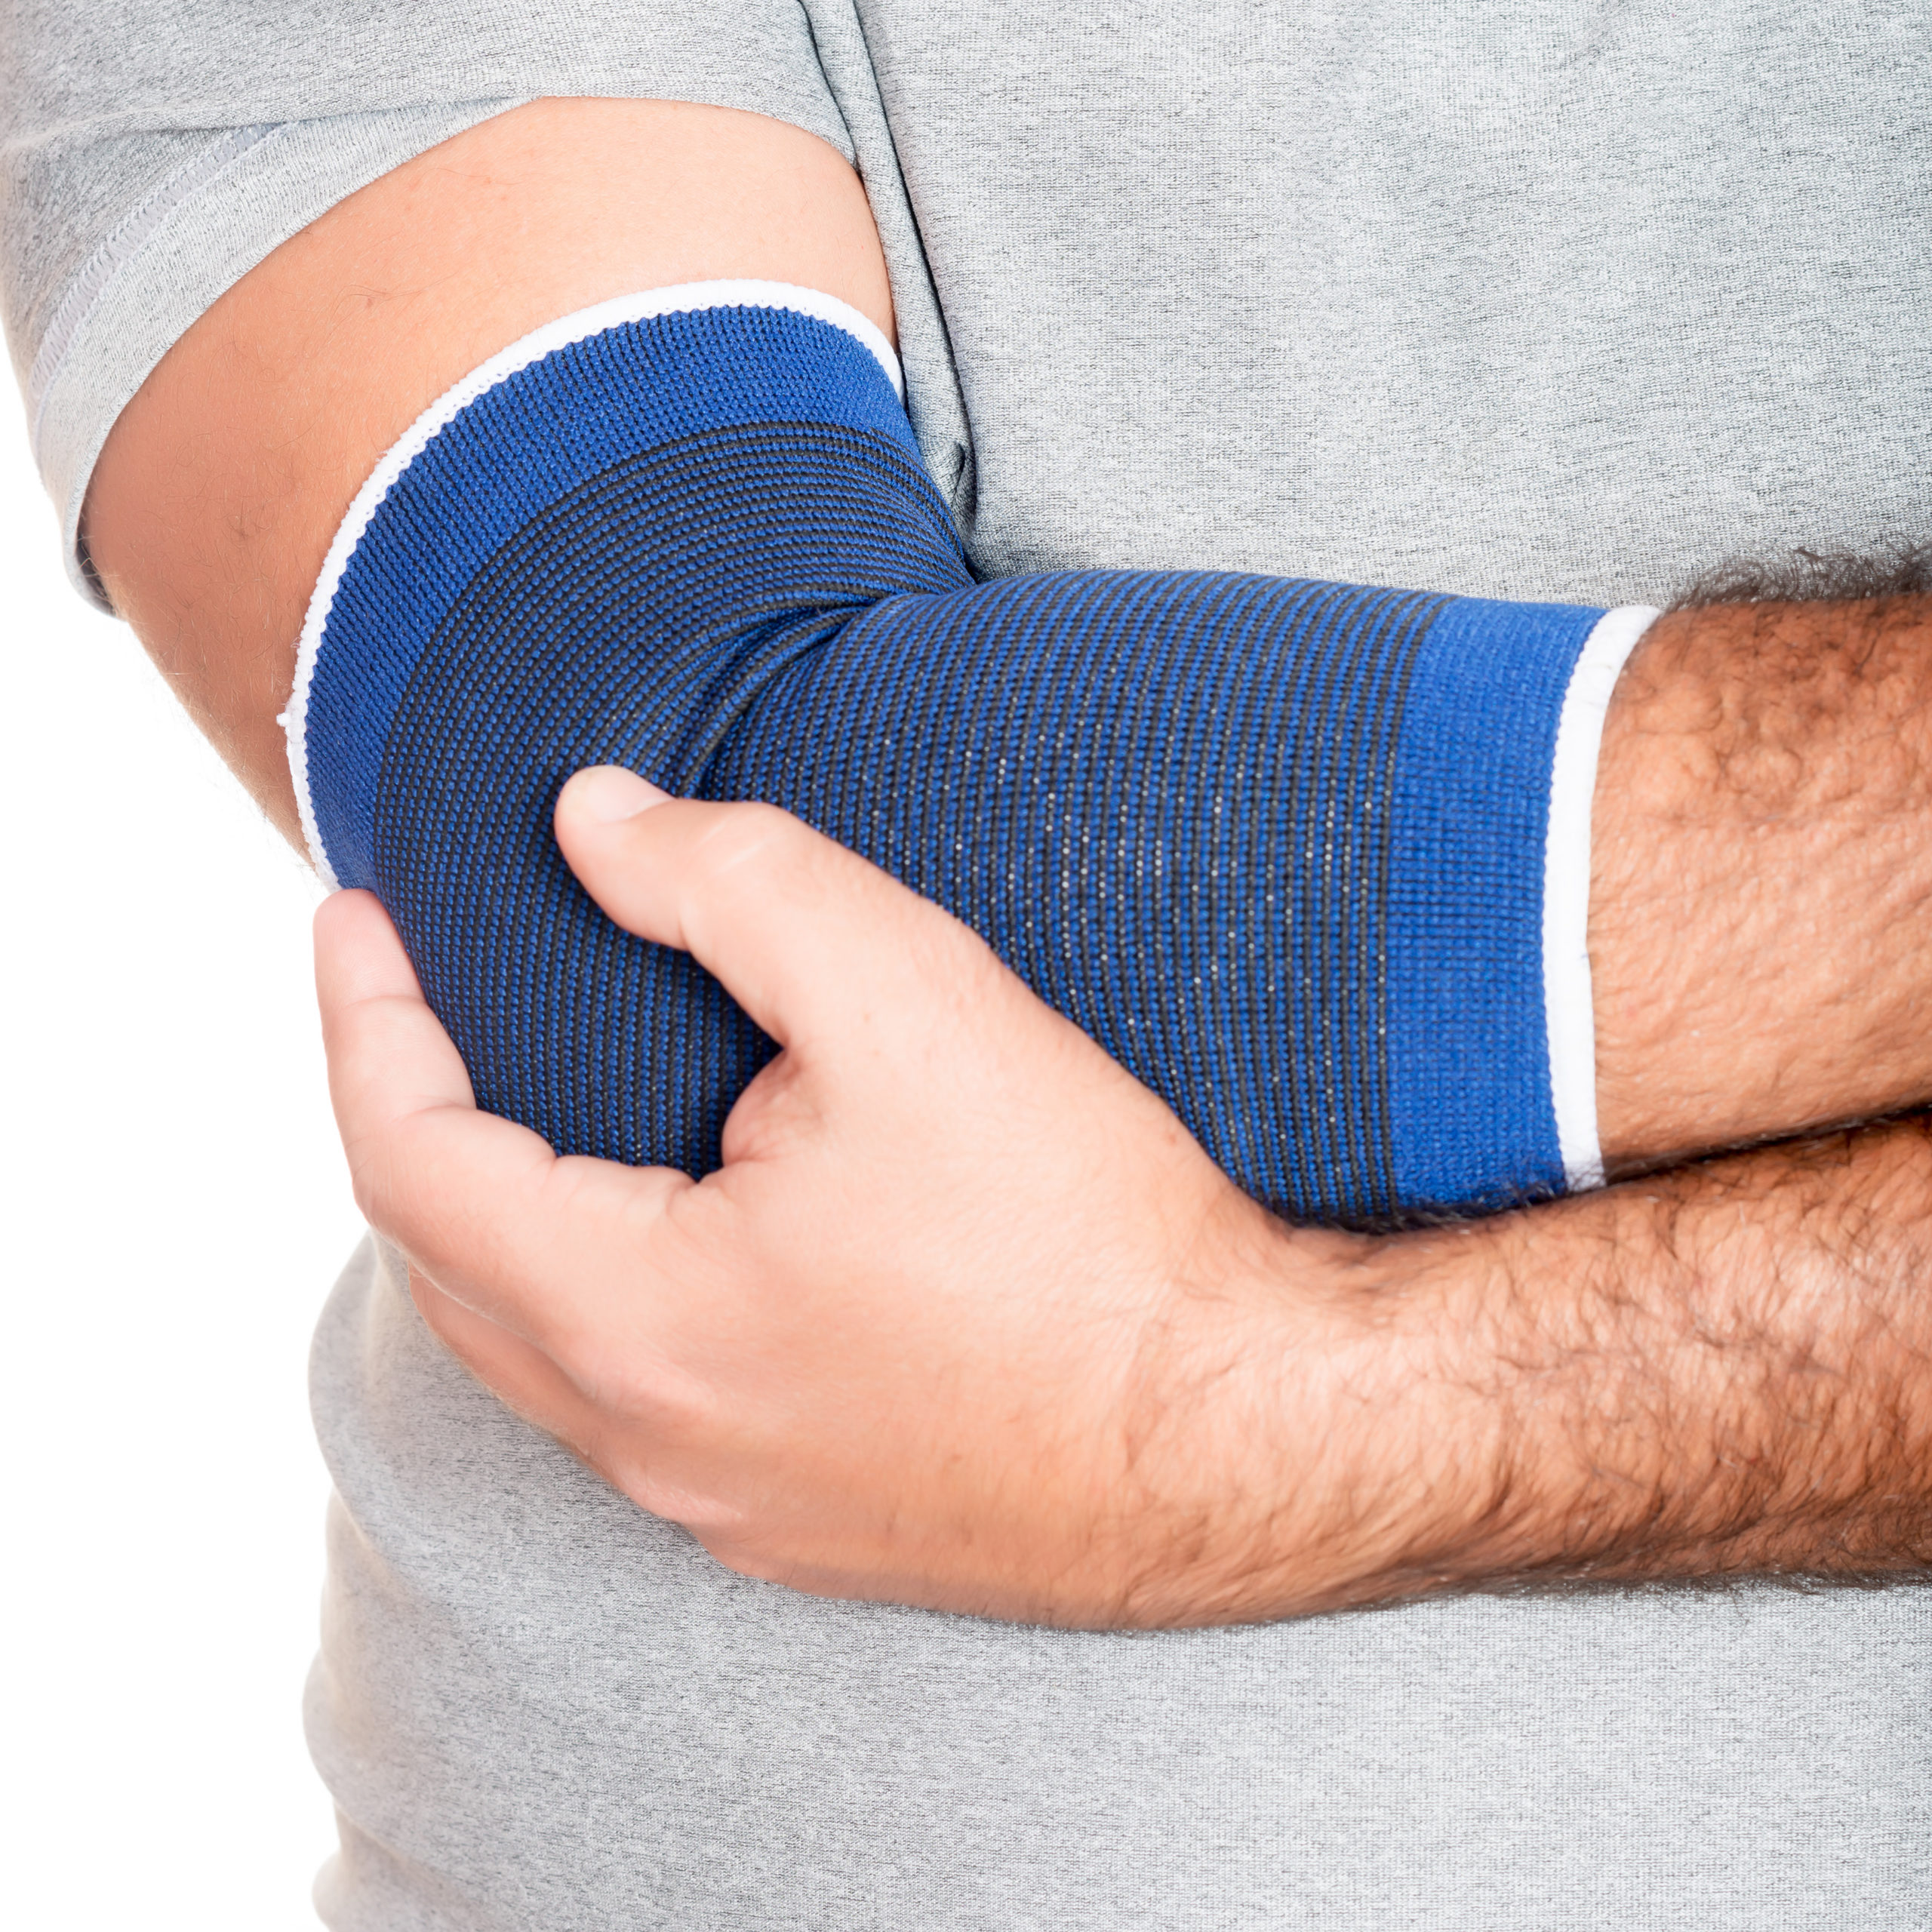 Man with a therapeutic elastic band on his elbow